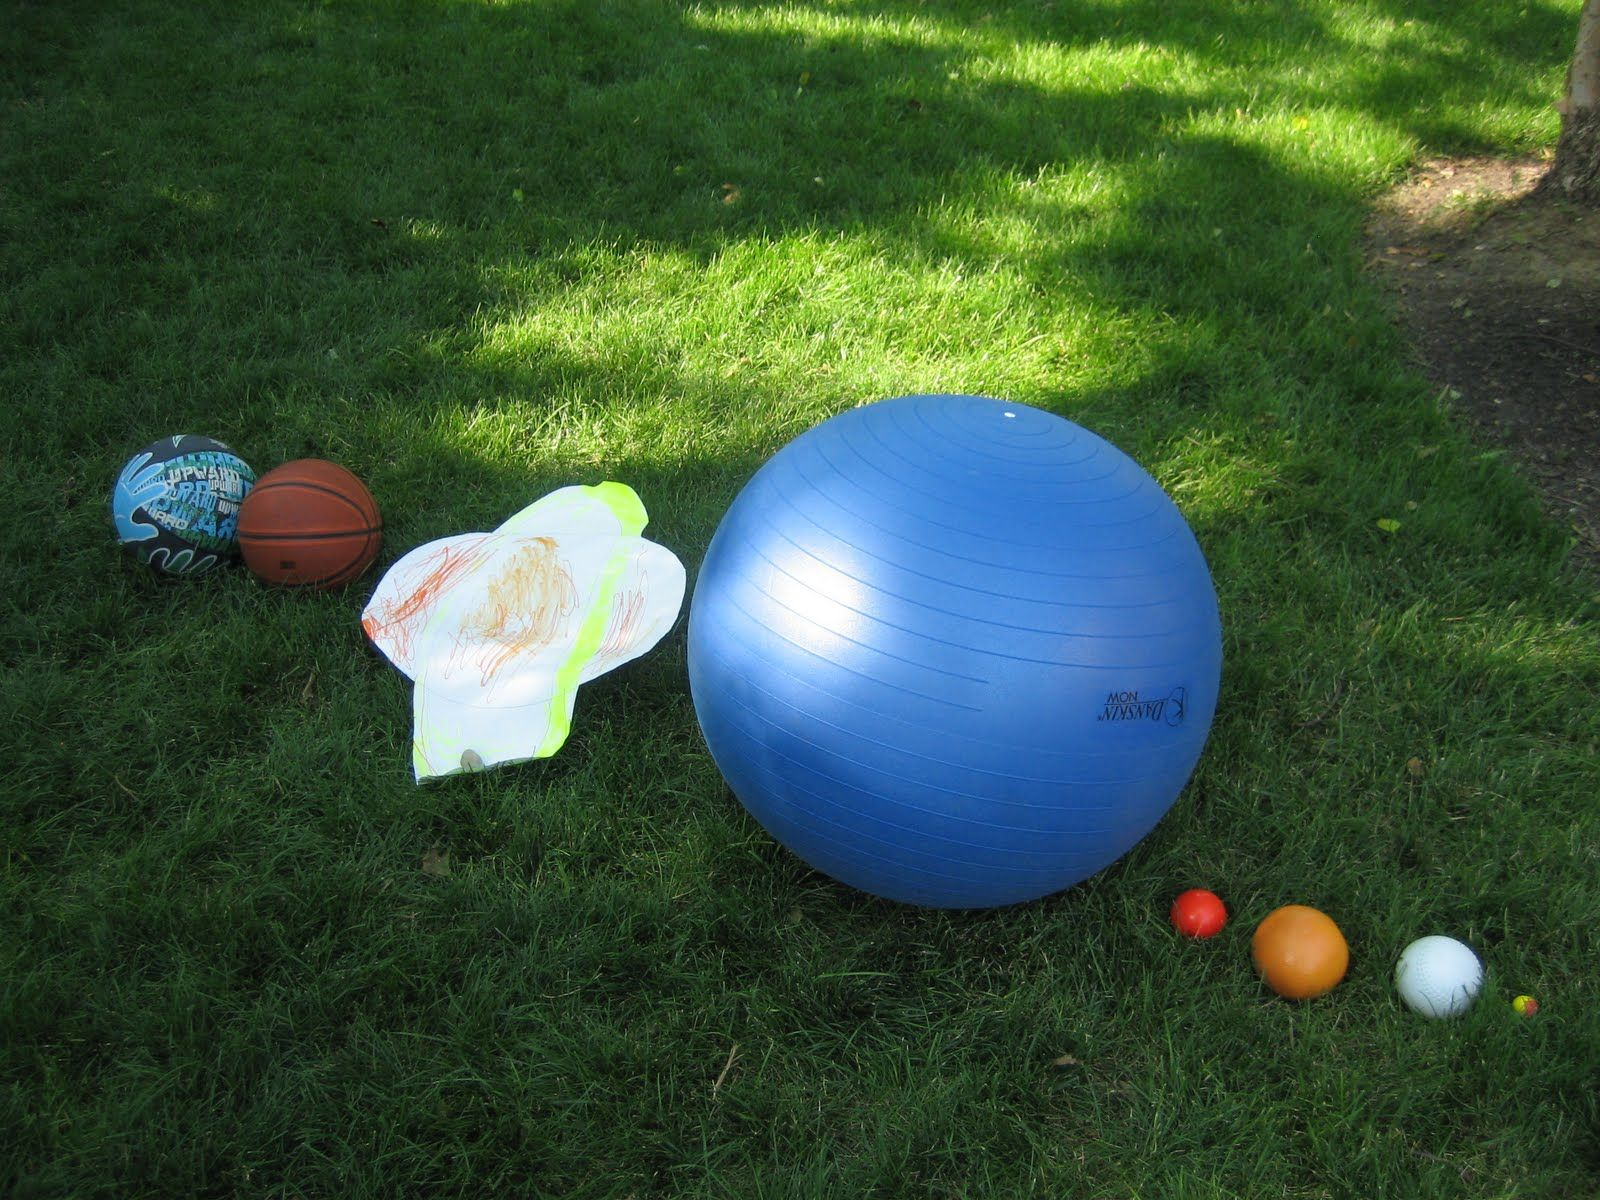 Scale Model Of The Solar System Using Sports Balls Google Search Solar System To Scale Solar System Projects Solar System